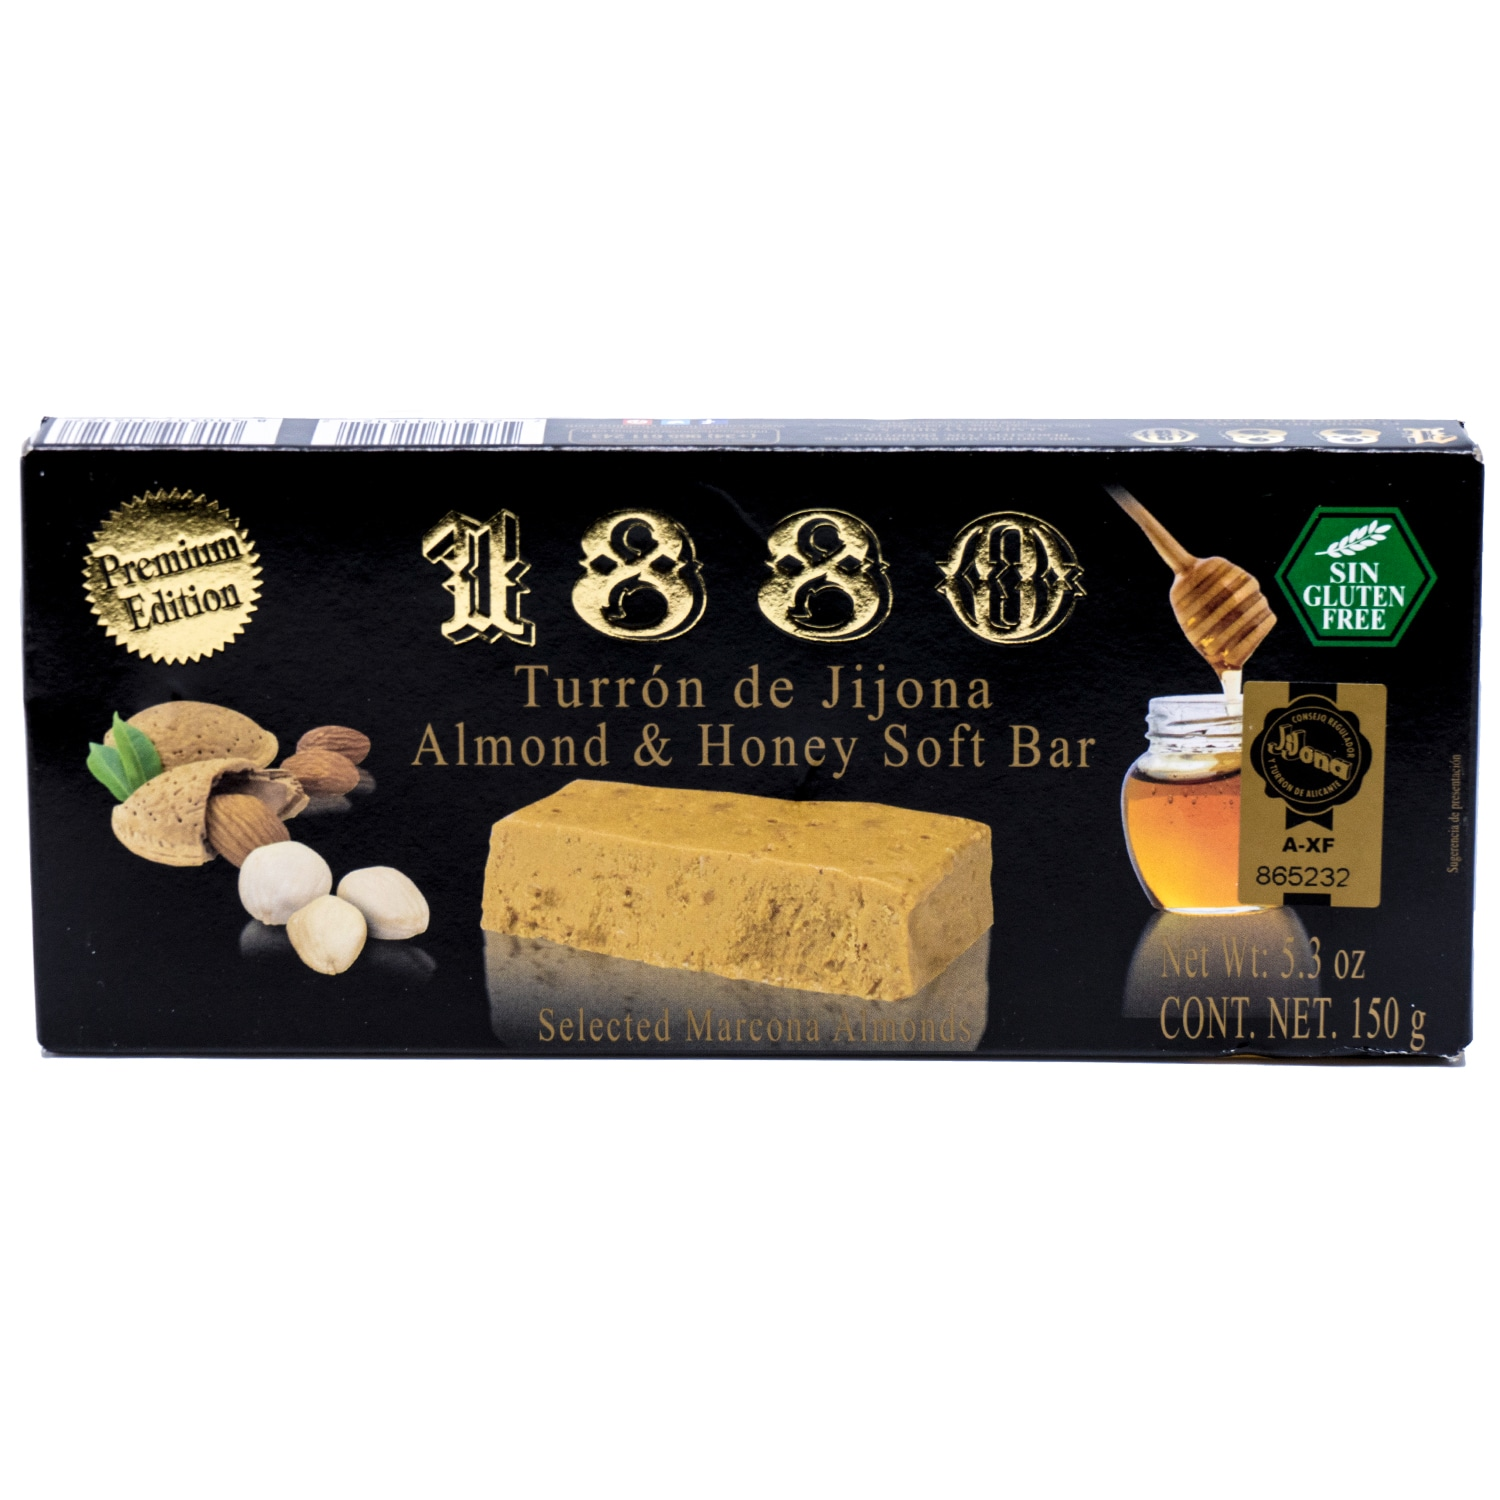 1880 Turron de Jijona Almond und Honey Soft Bar weiche Mandeltafel 50g